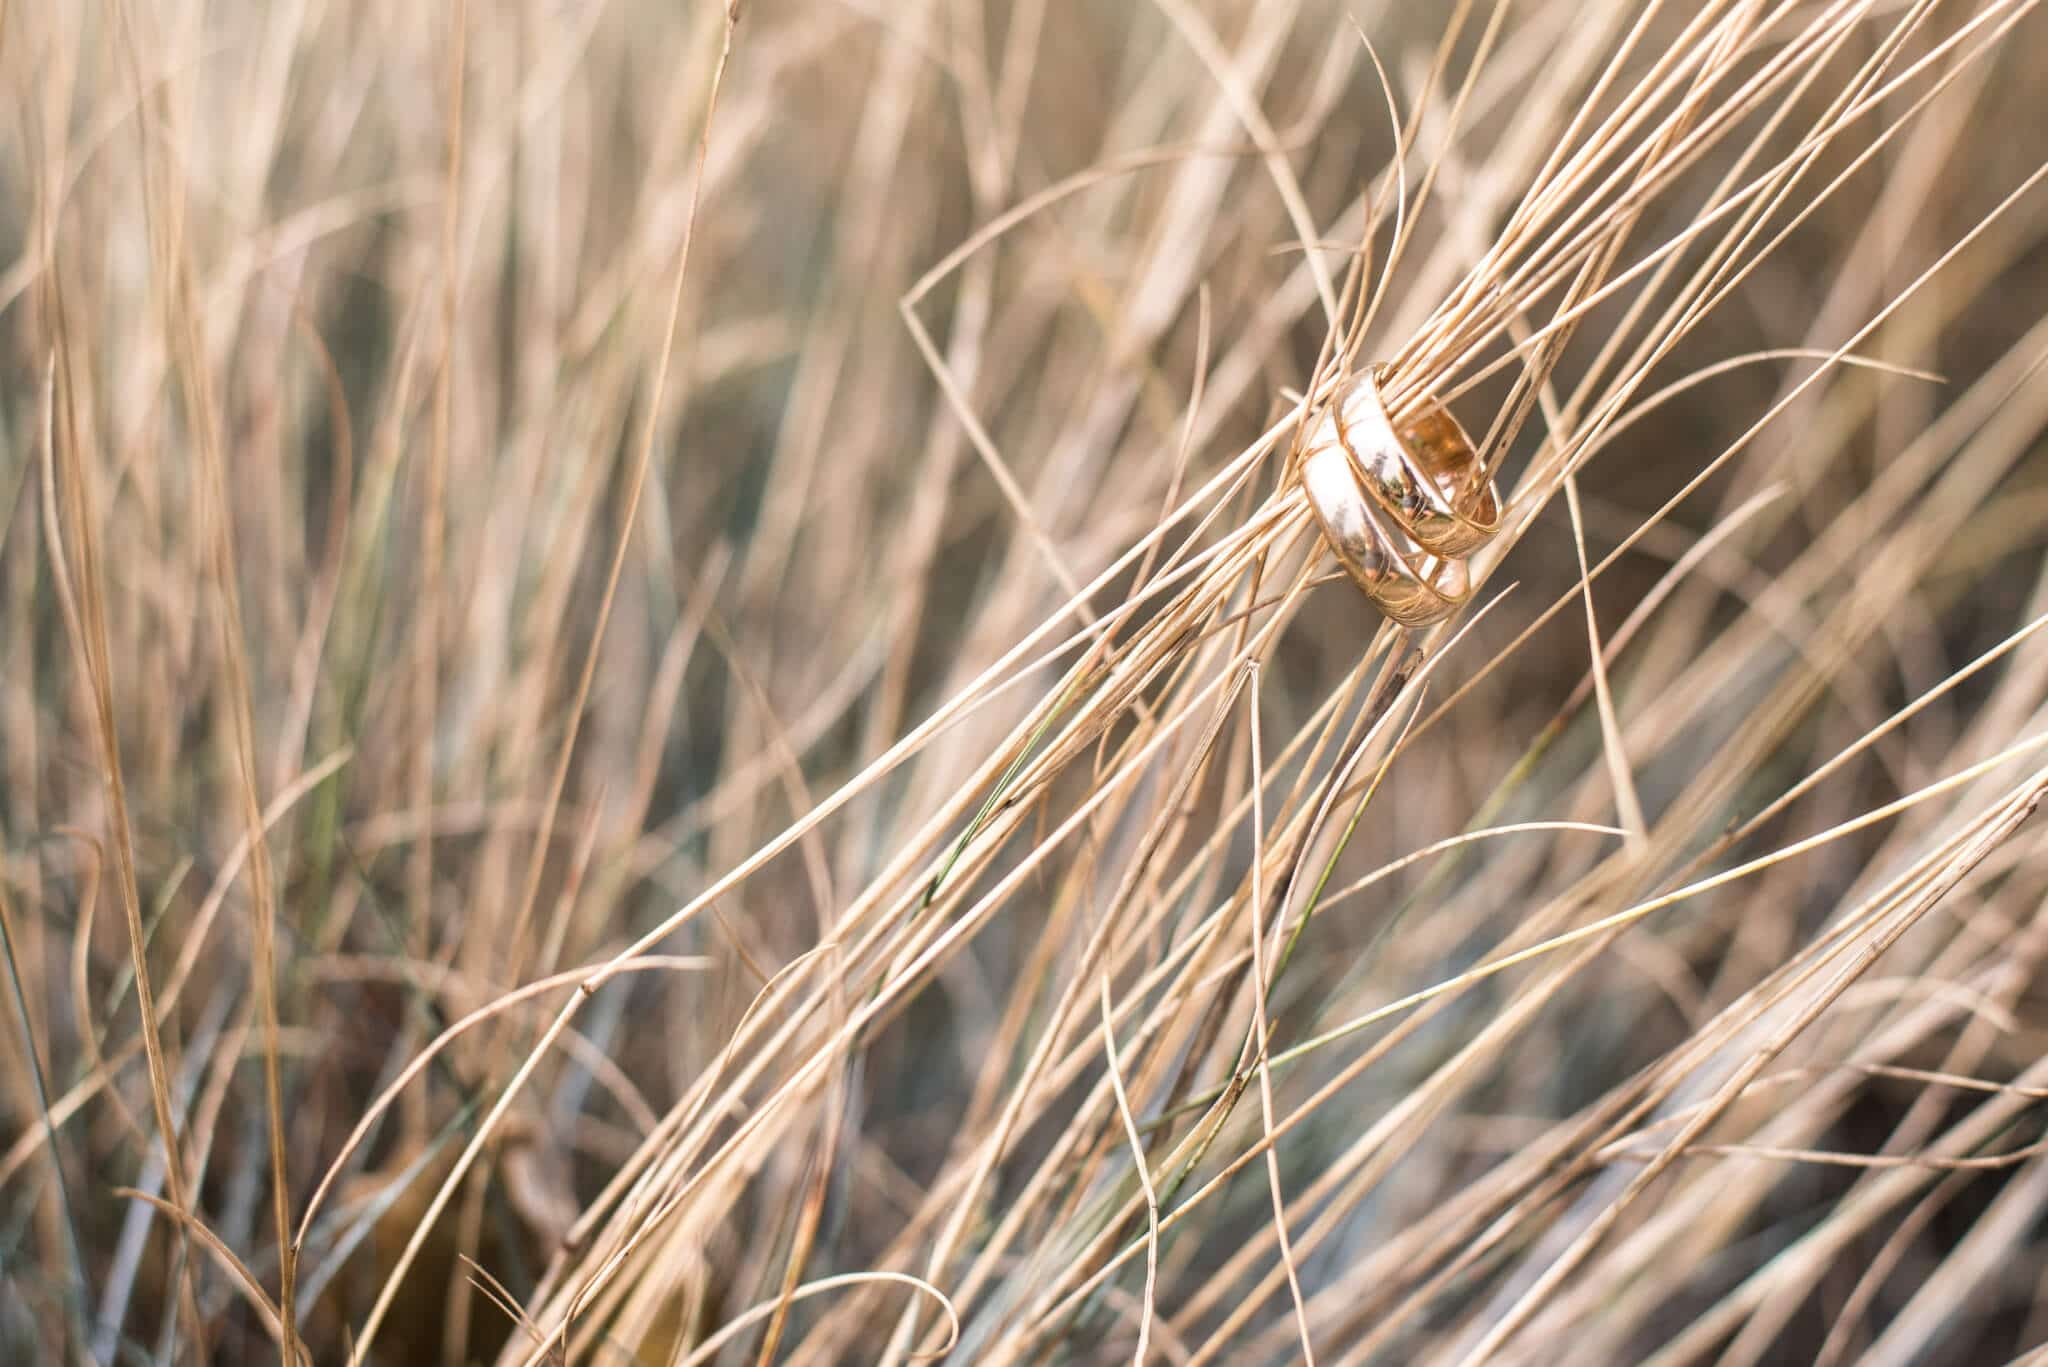 gold rings on stalks of straw